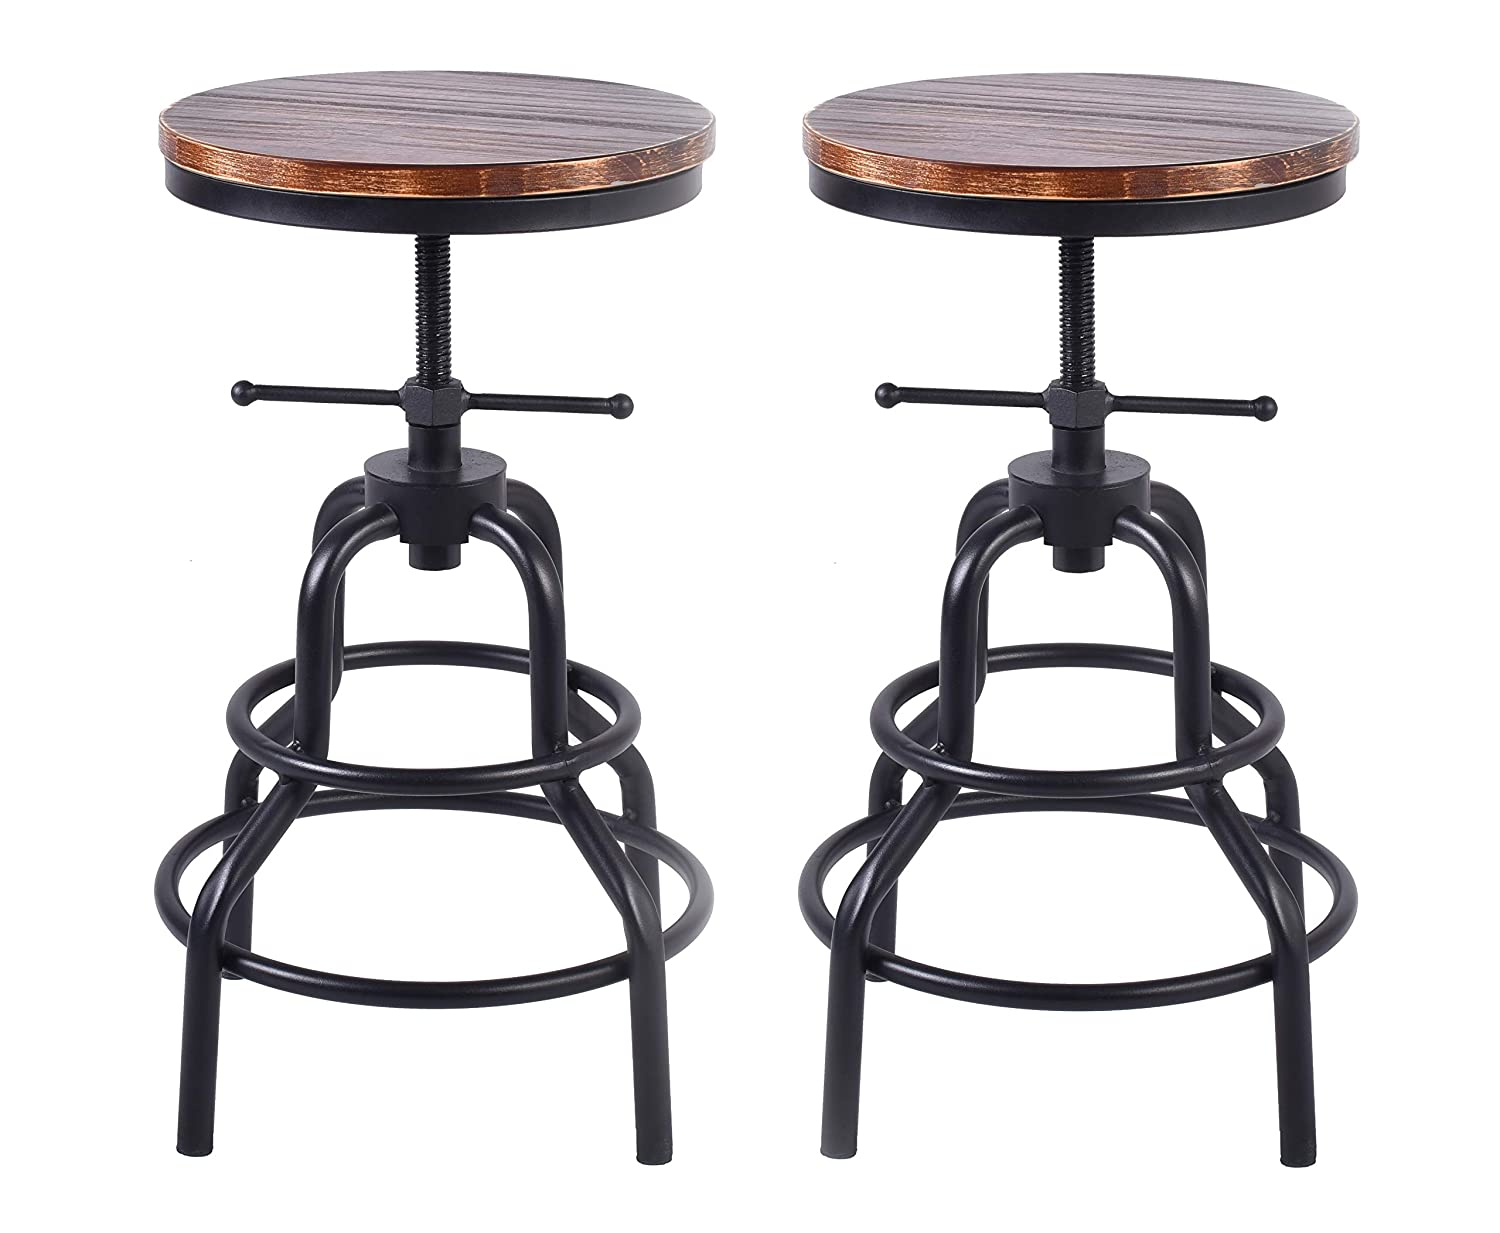 LOKKHAN Vintage Industrial Bar Stool,Rustic Swivel Bar Stool,Round Wood and Metal Stool,Kitchen Counter Height Adjustable Pipe Stool,Cast Iron Stool 27 Inch,No Assembly Required(Set of 2)